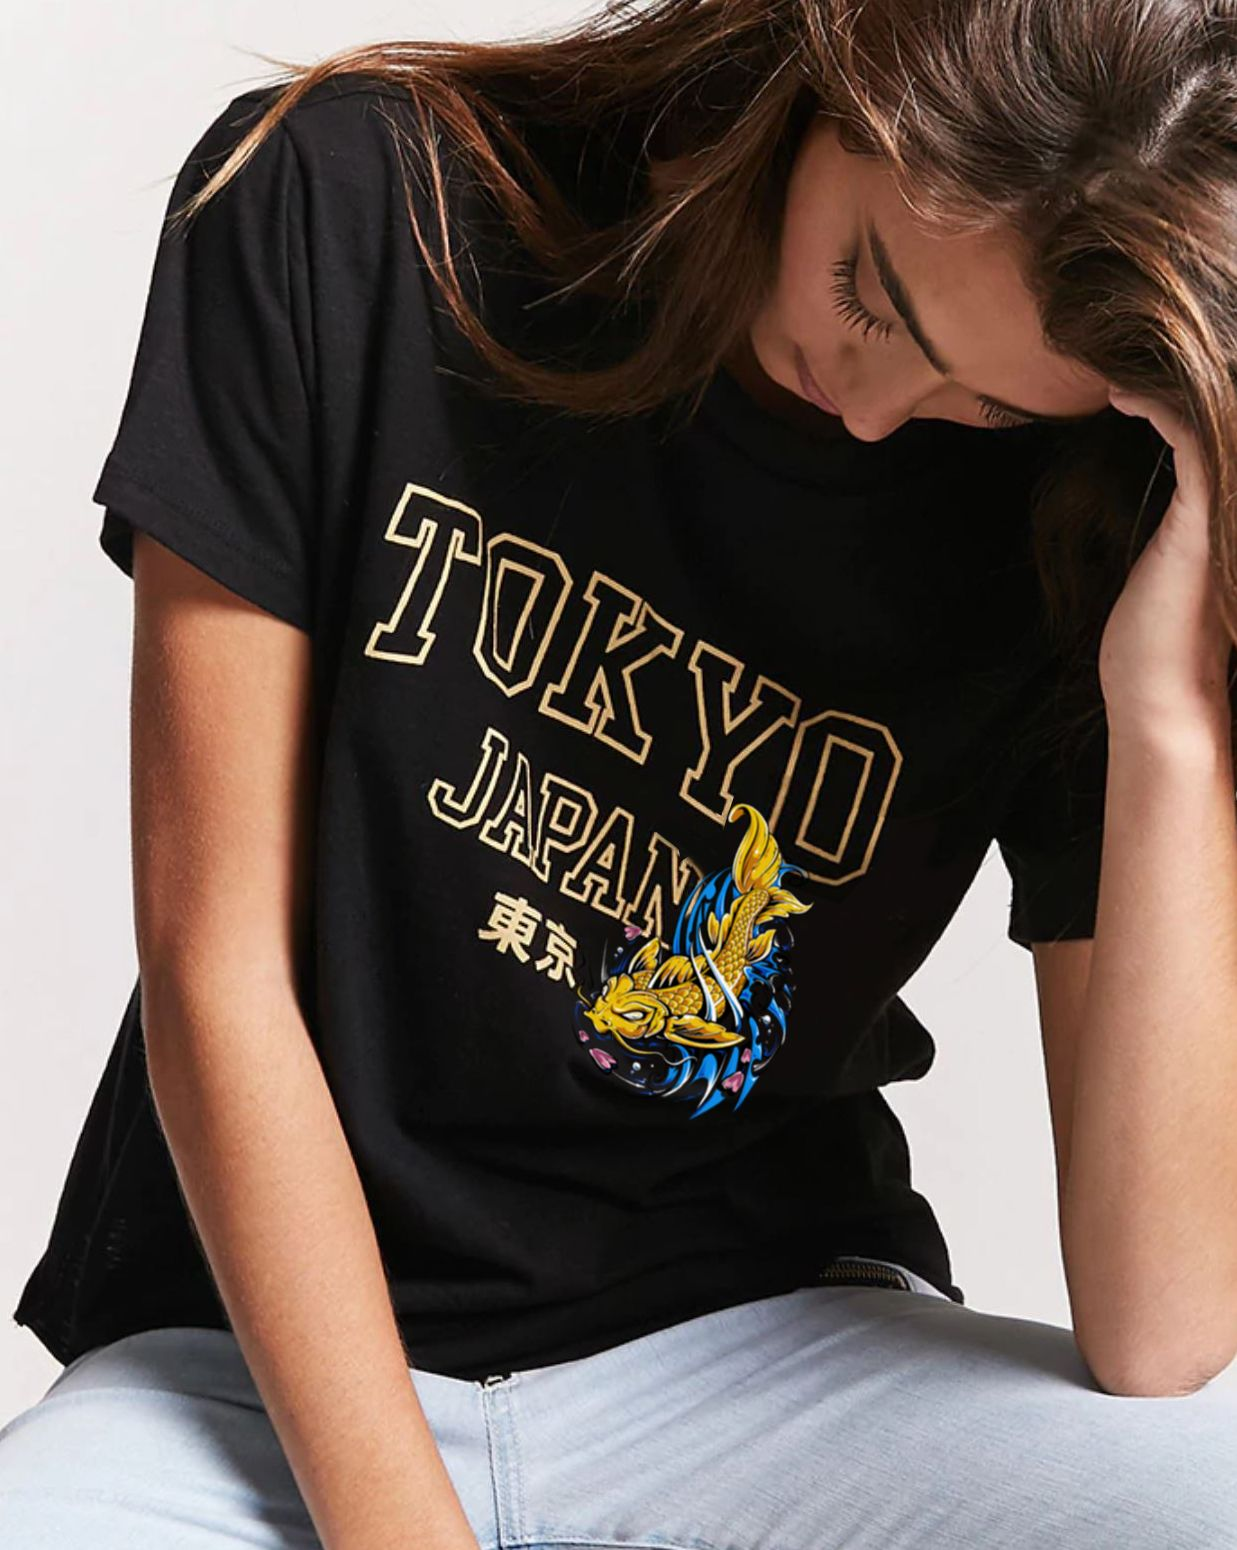 d13a5587c1 Love this Tokyo Japan tee shirt with this fierce looking koi fish ...